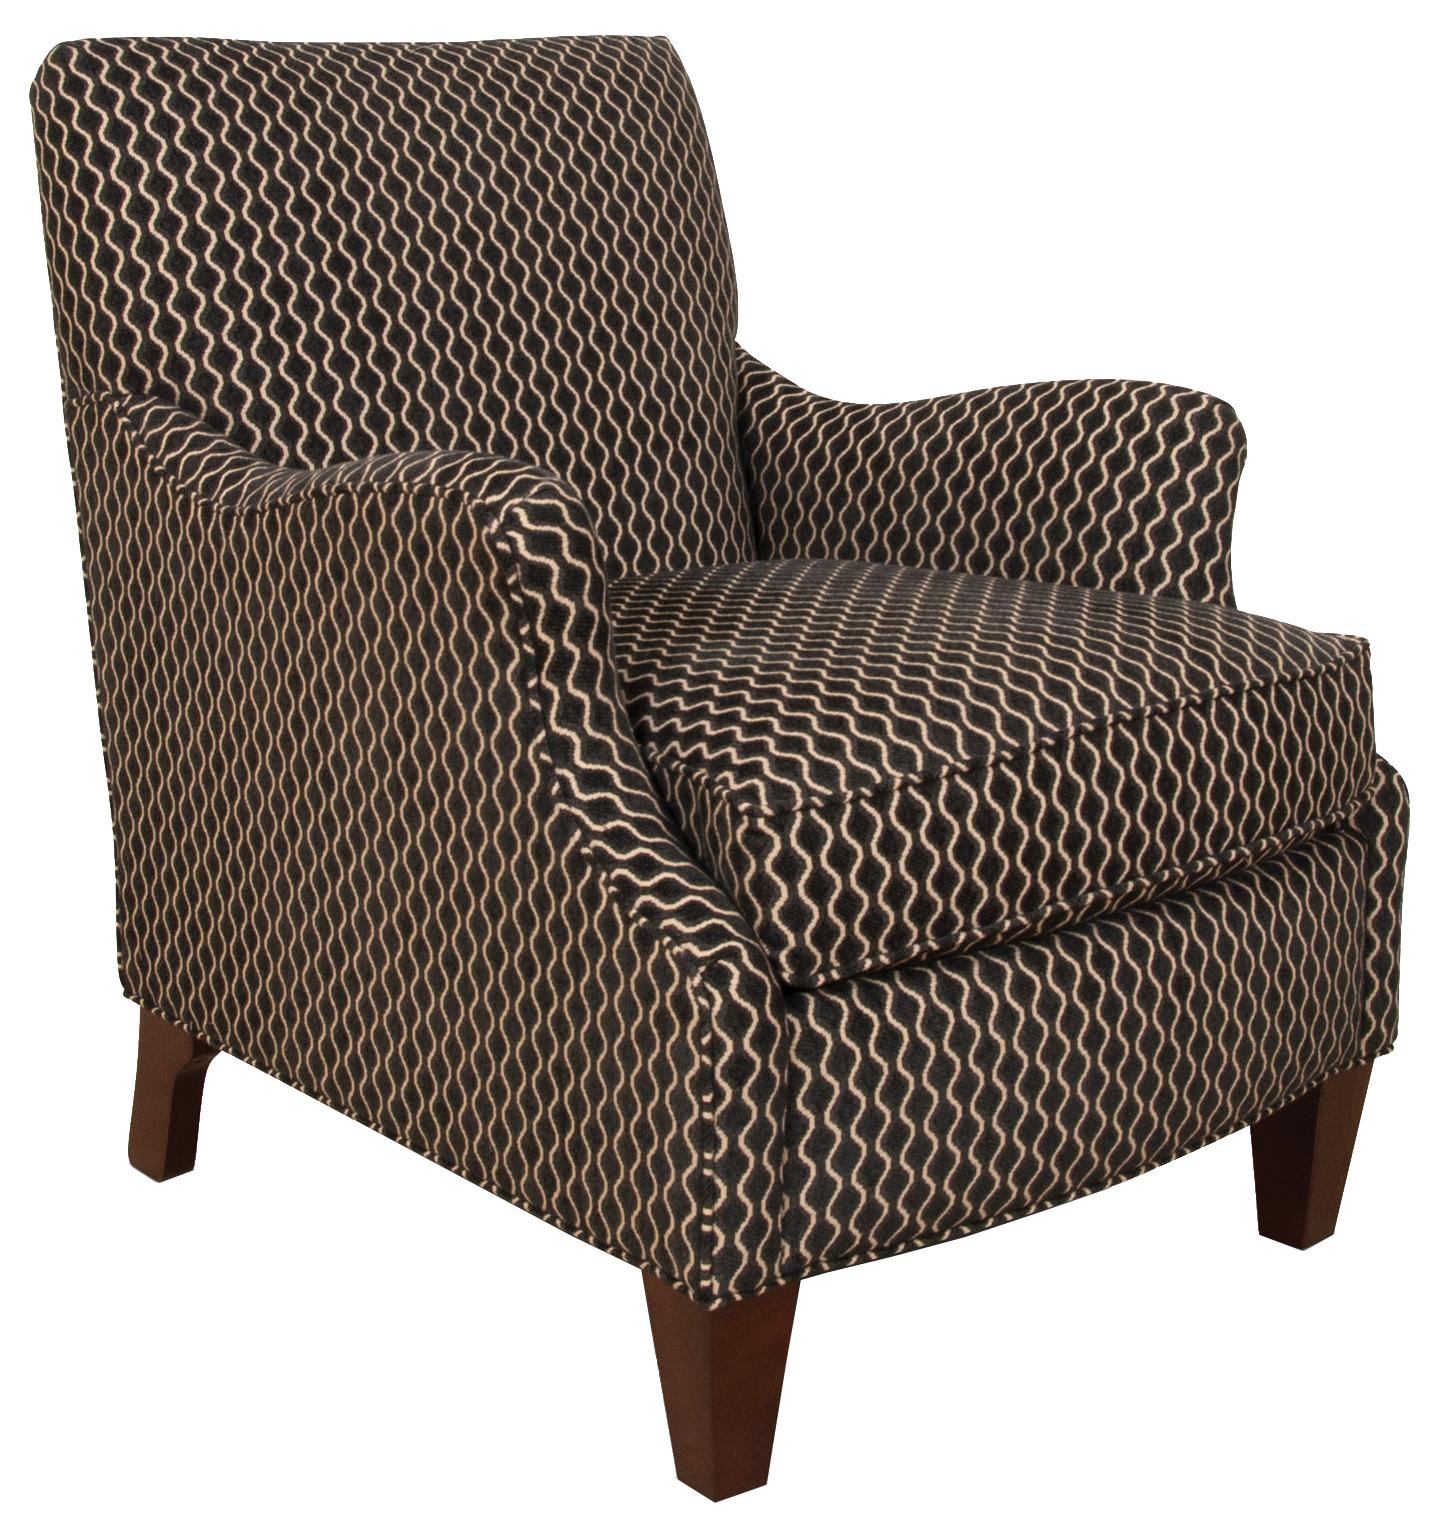 England Gillian Chair - Item Number: 8434